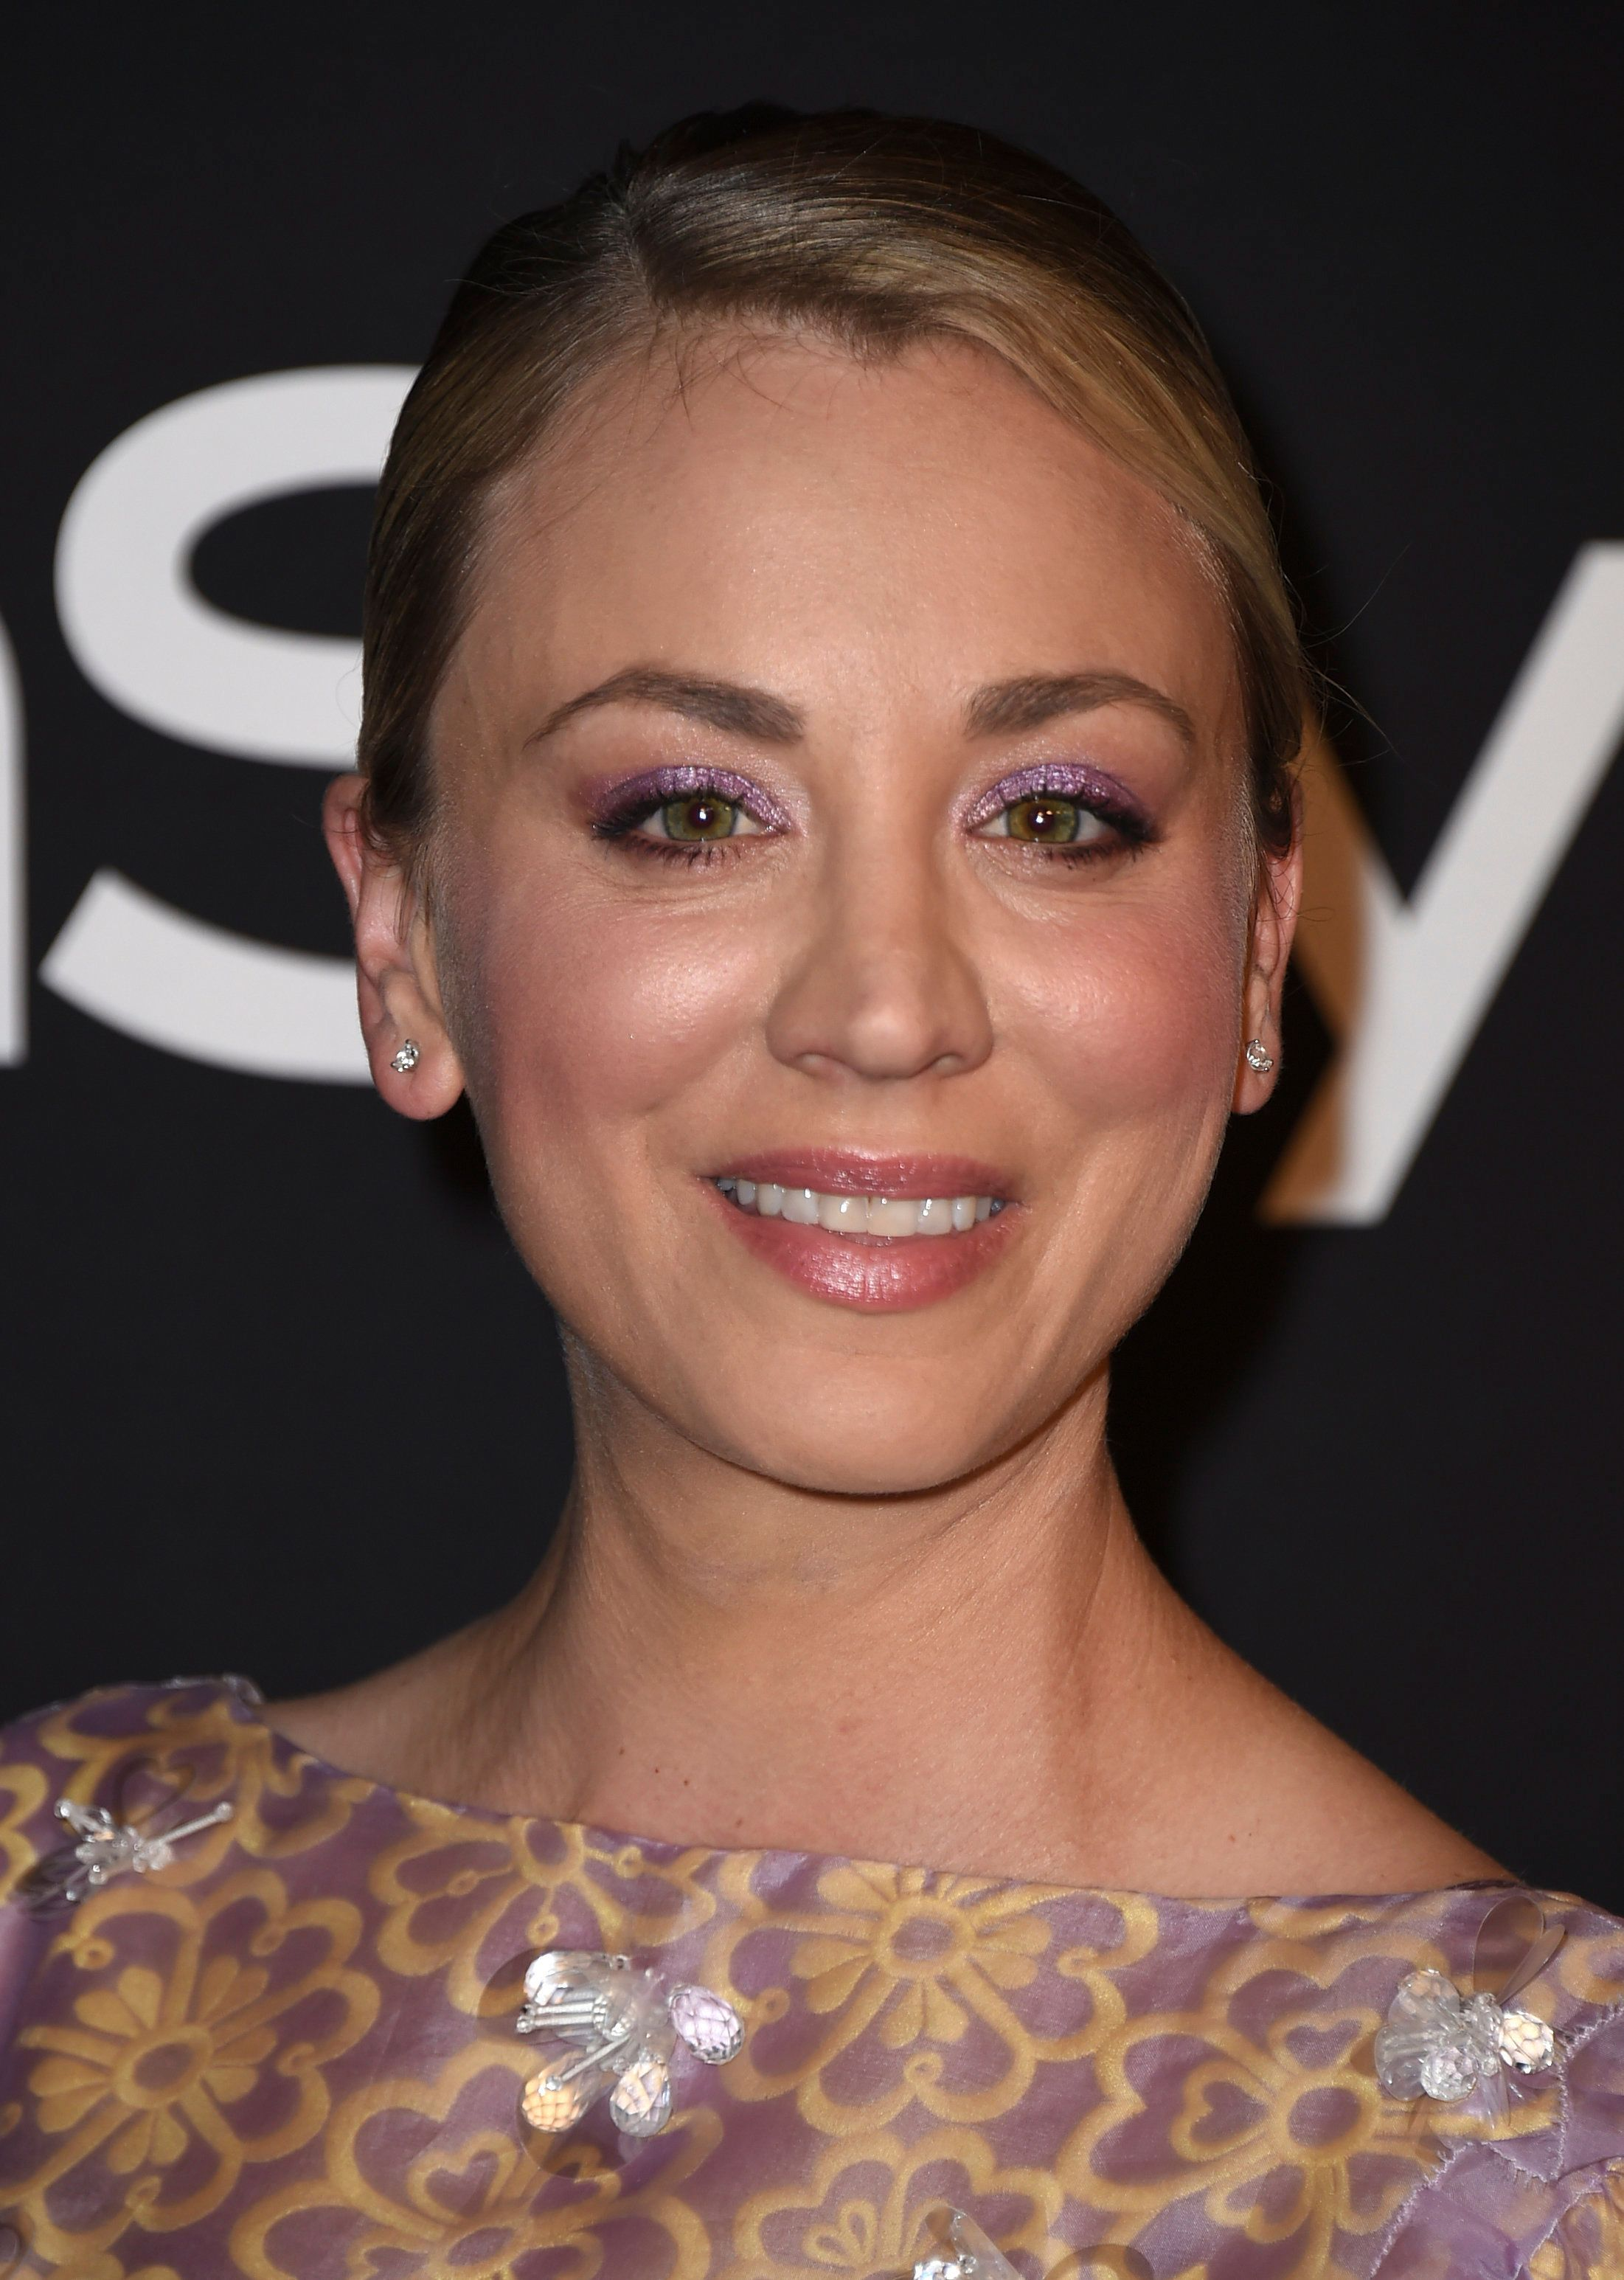 Kaley Cuoco arrives at the fourth annual InStyle Awards at The Getty Center on Monday, Oct. 22, 2018 in Los Angeles. (Photo by Jordan Strauss/Invision/AP)